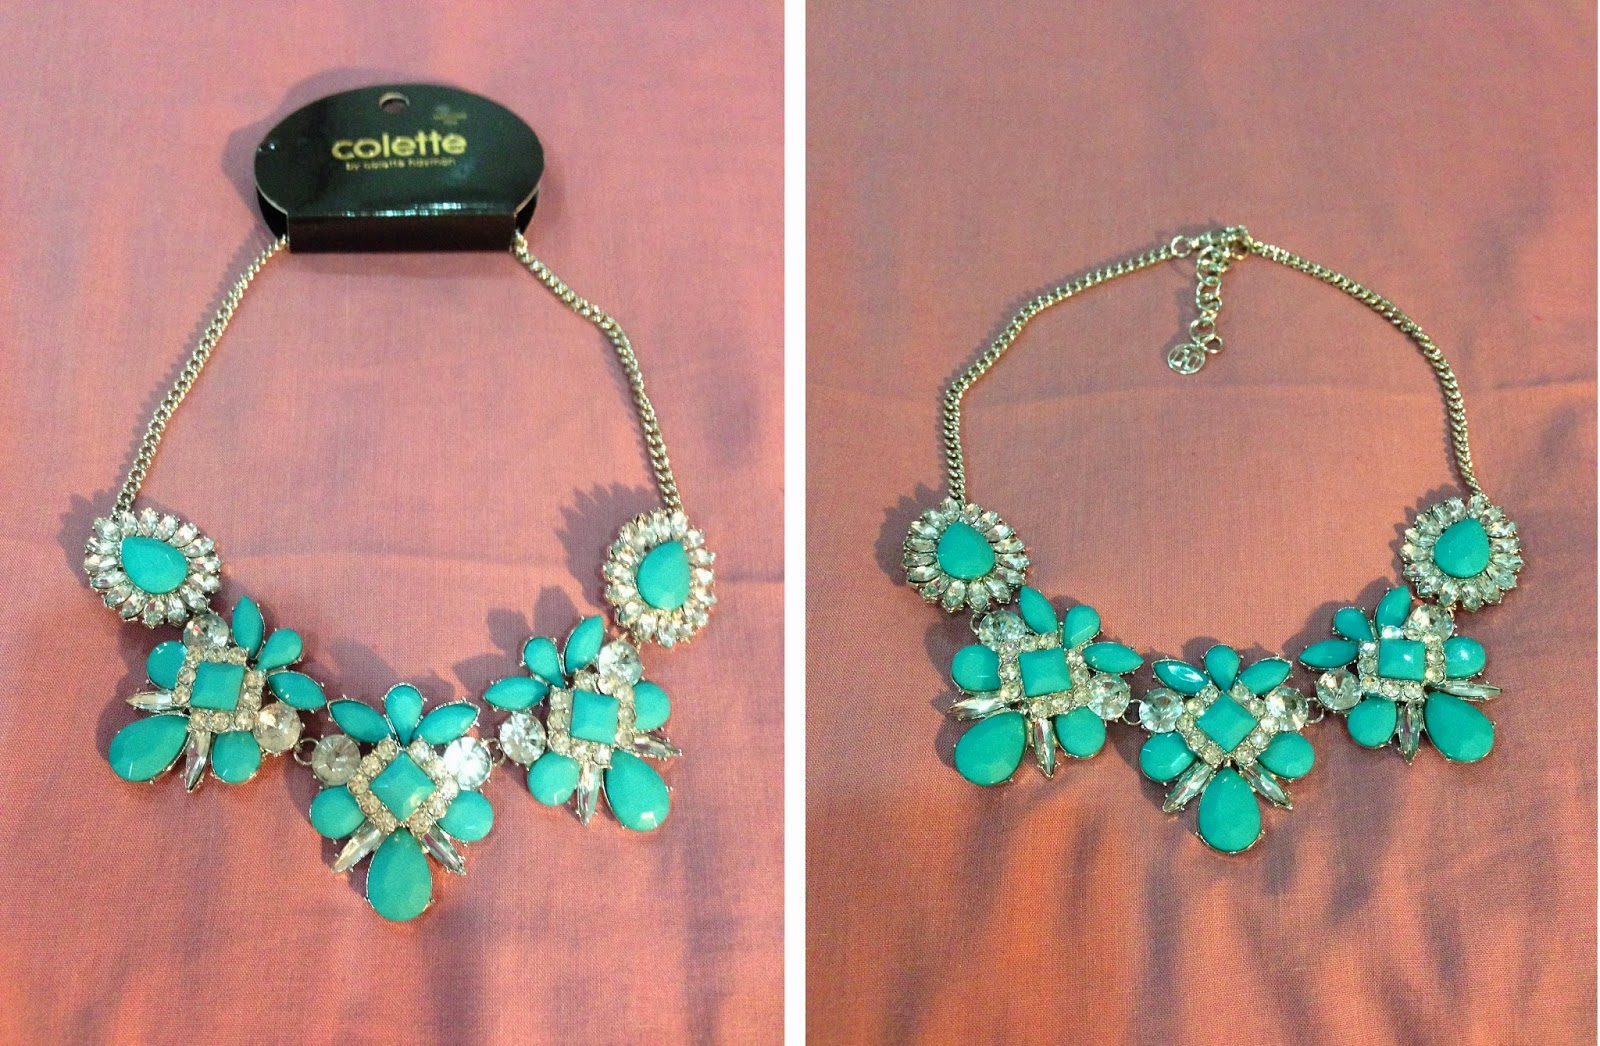 Stone and Crystal Statement Necklace